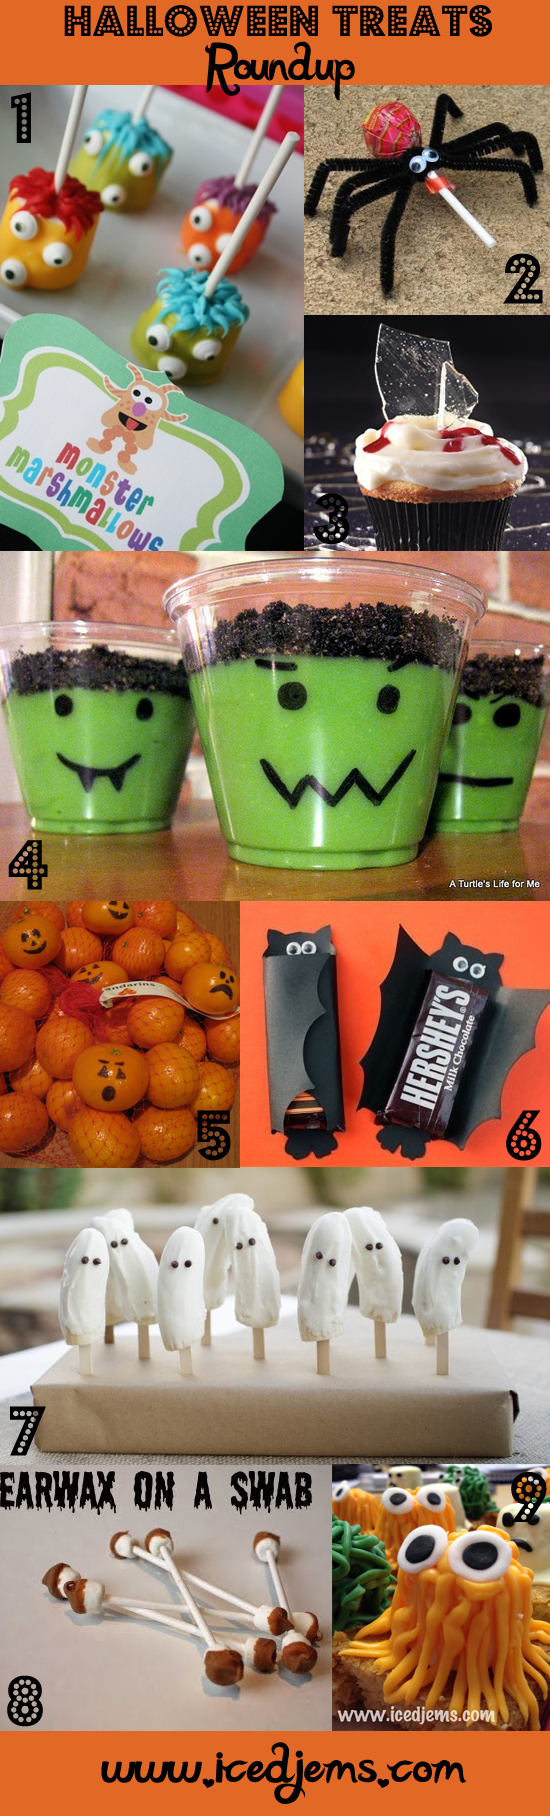 Simple Halloween Sweets